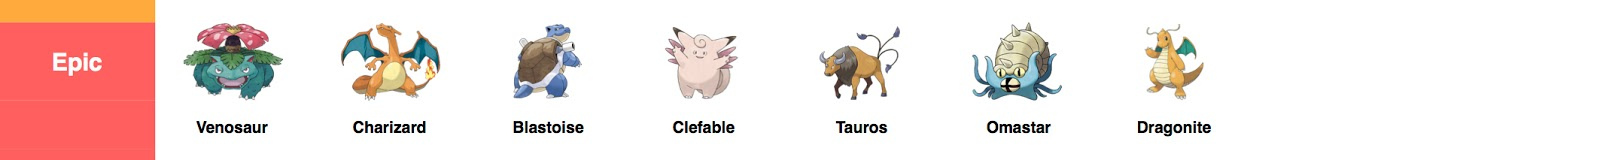 pokemon epic